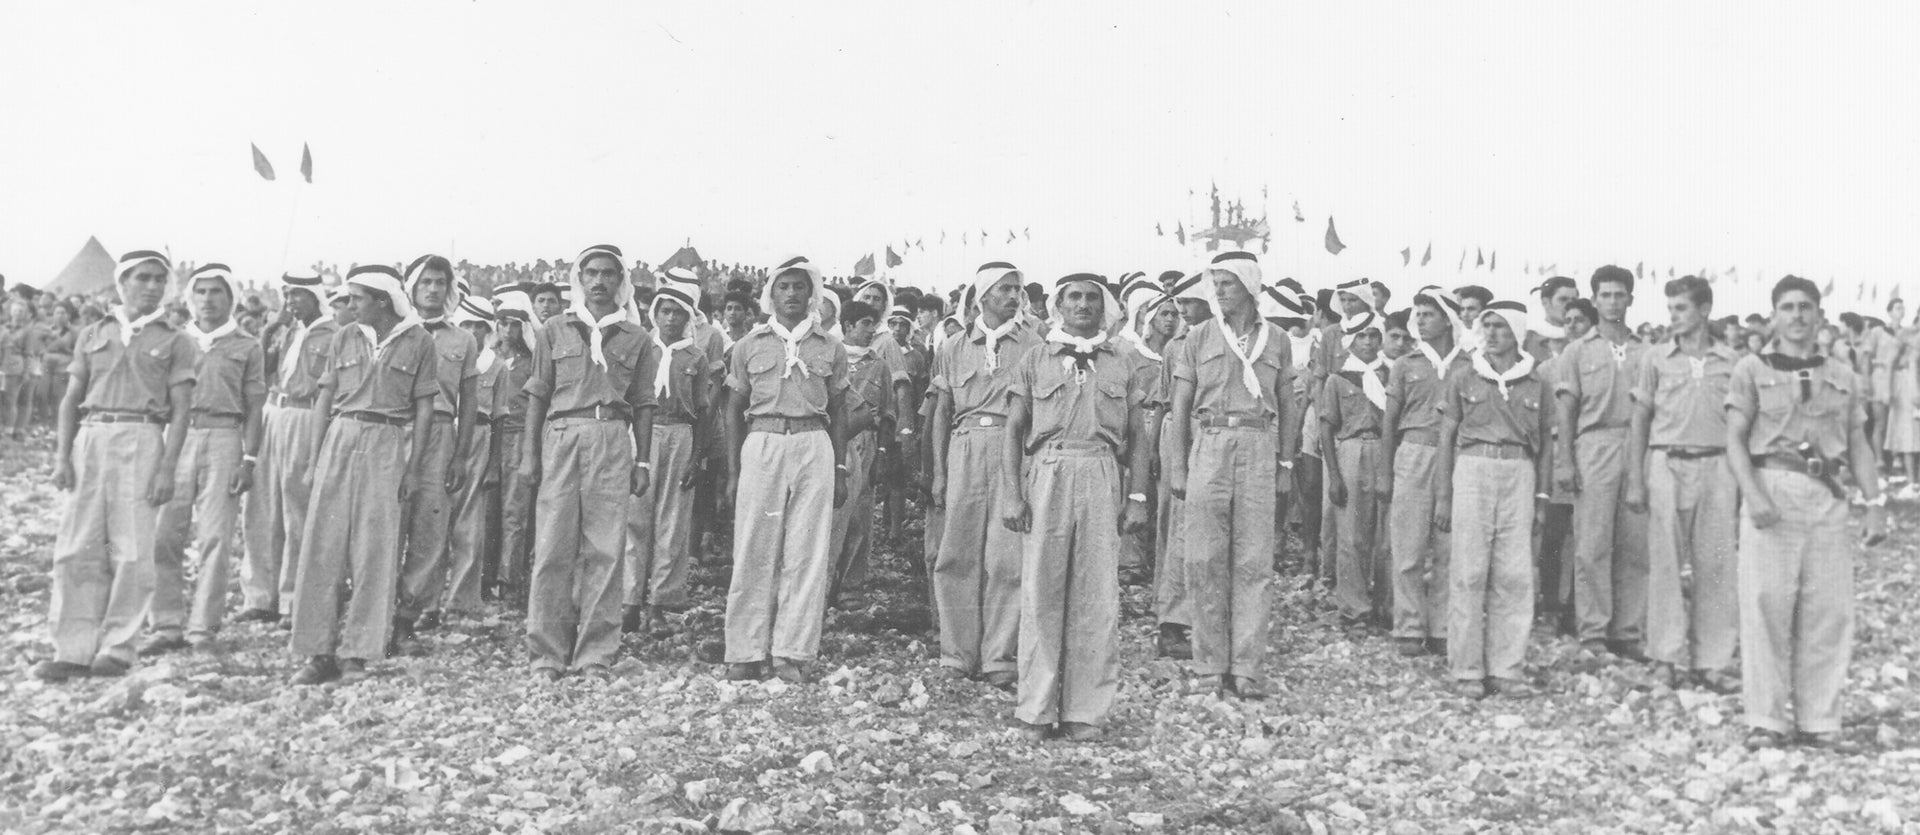 Members of the Pioneer Arab Youth movement, 1956. The organization 'implanted all kinds of hopes about fraternity, peace and friendship,' the son of one veteran says.